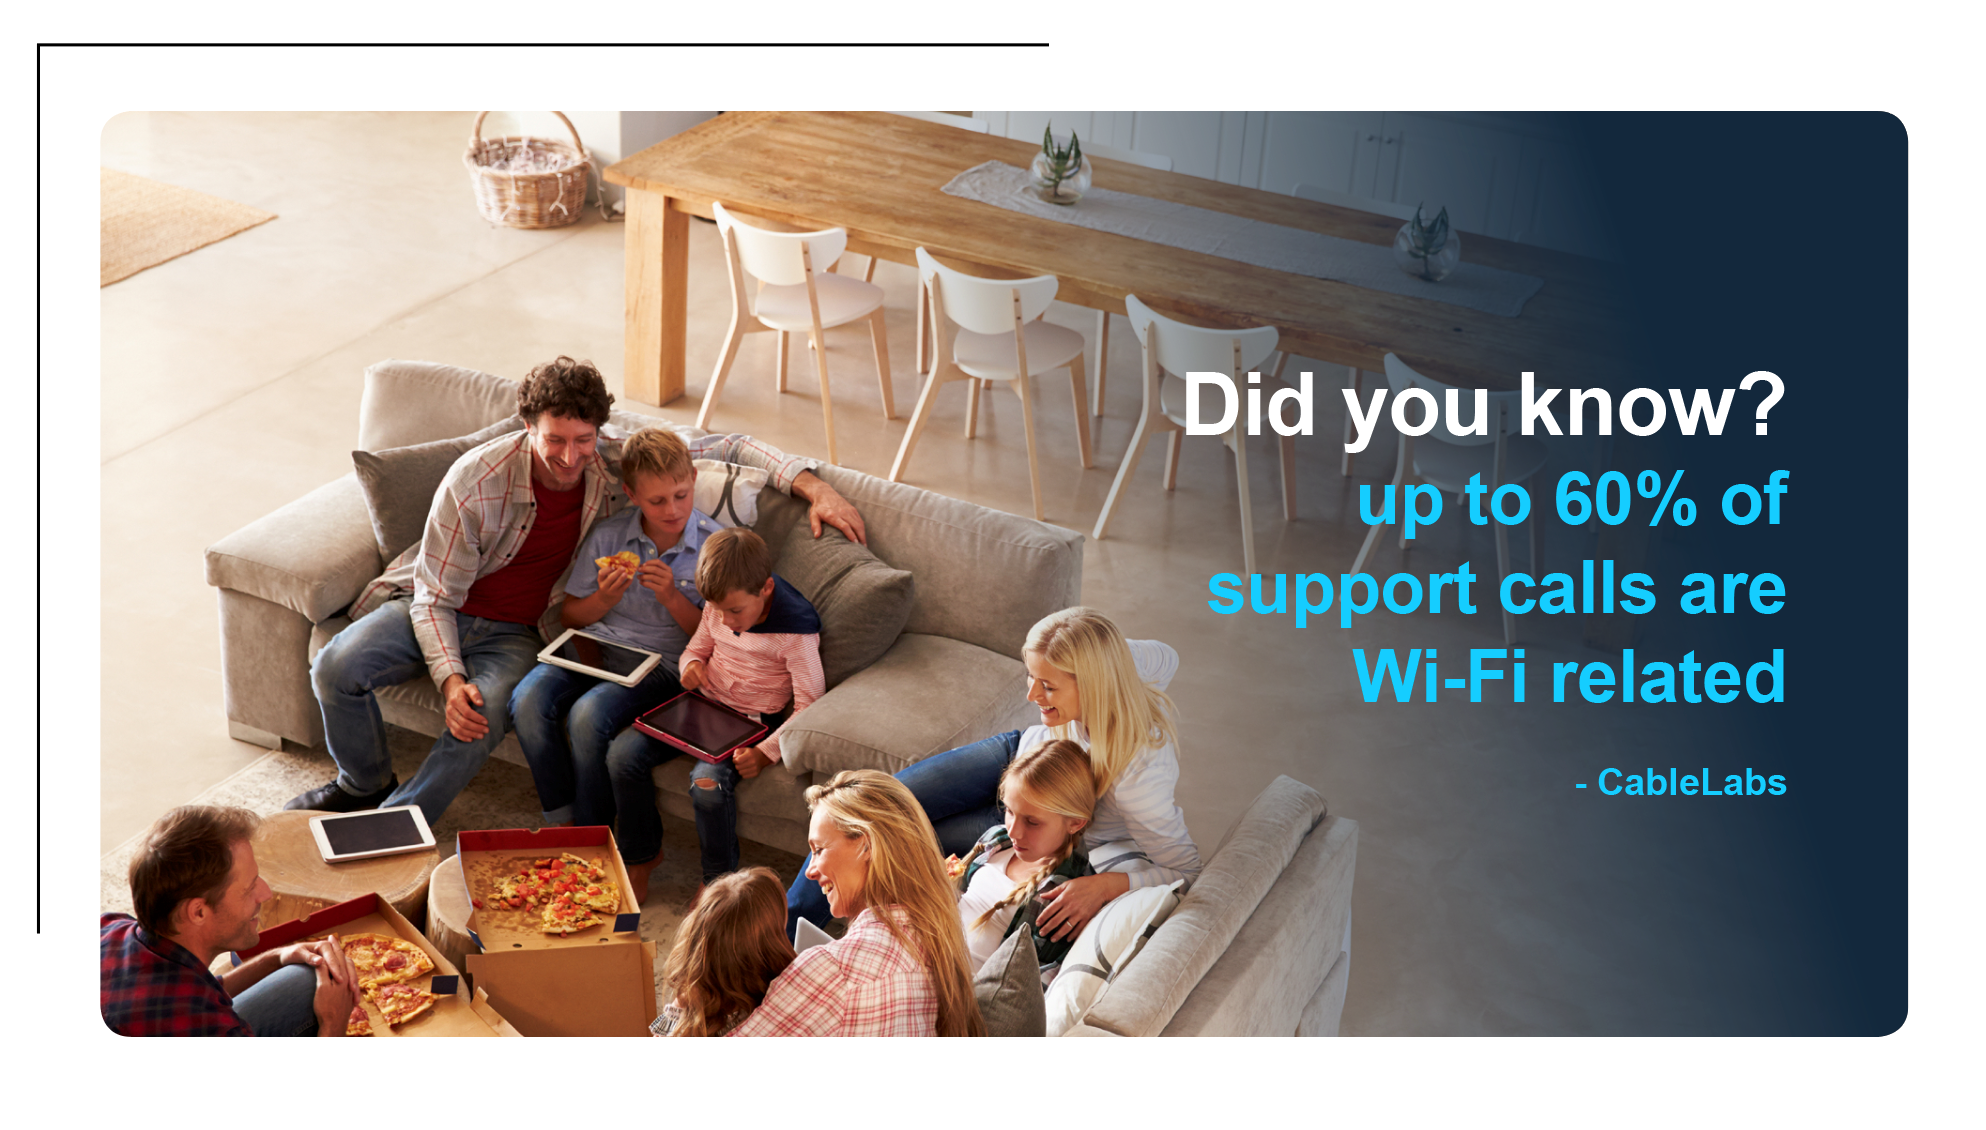 Most Support Calls for CSPs are Wi-Fi Related